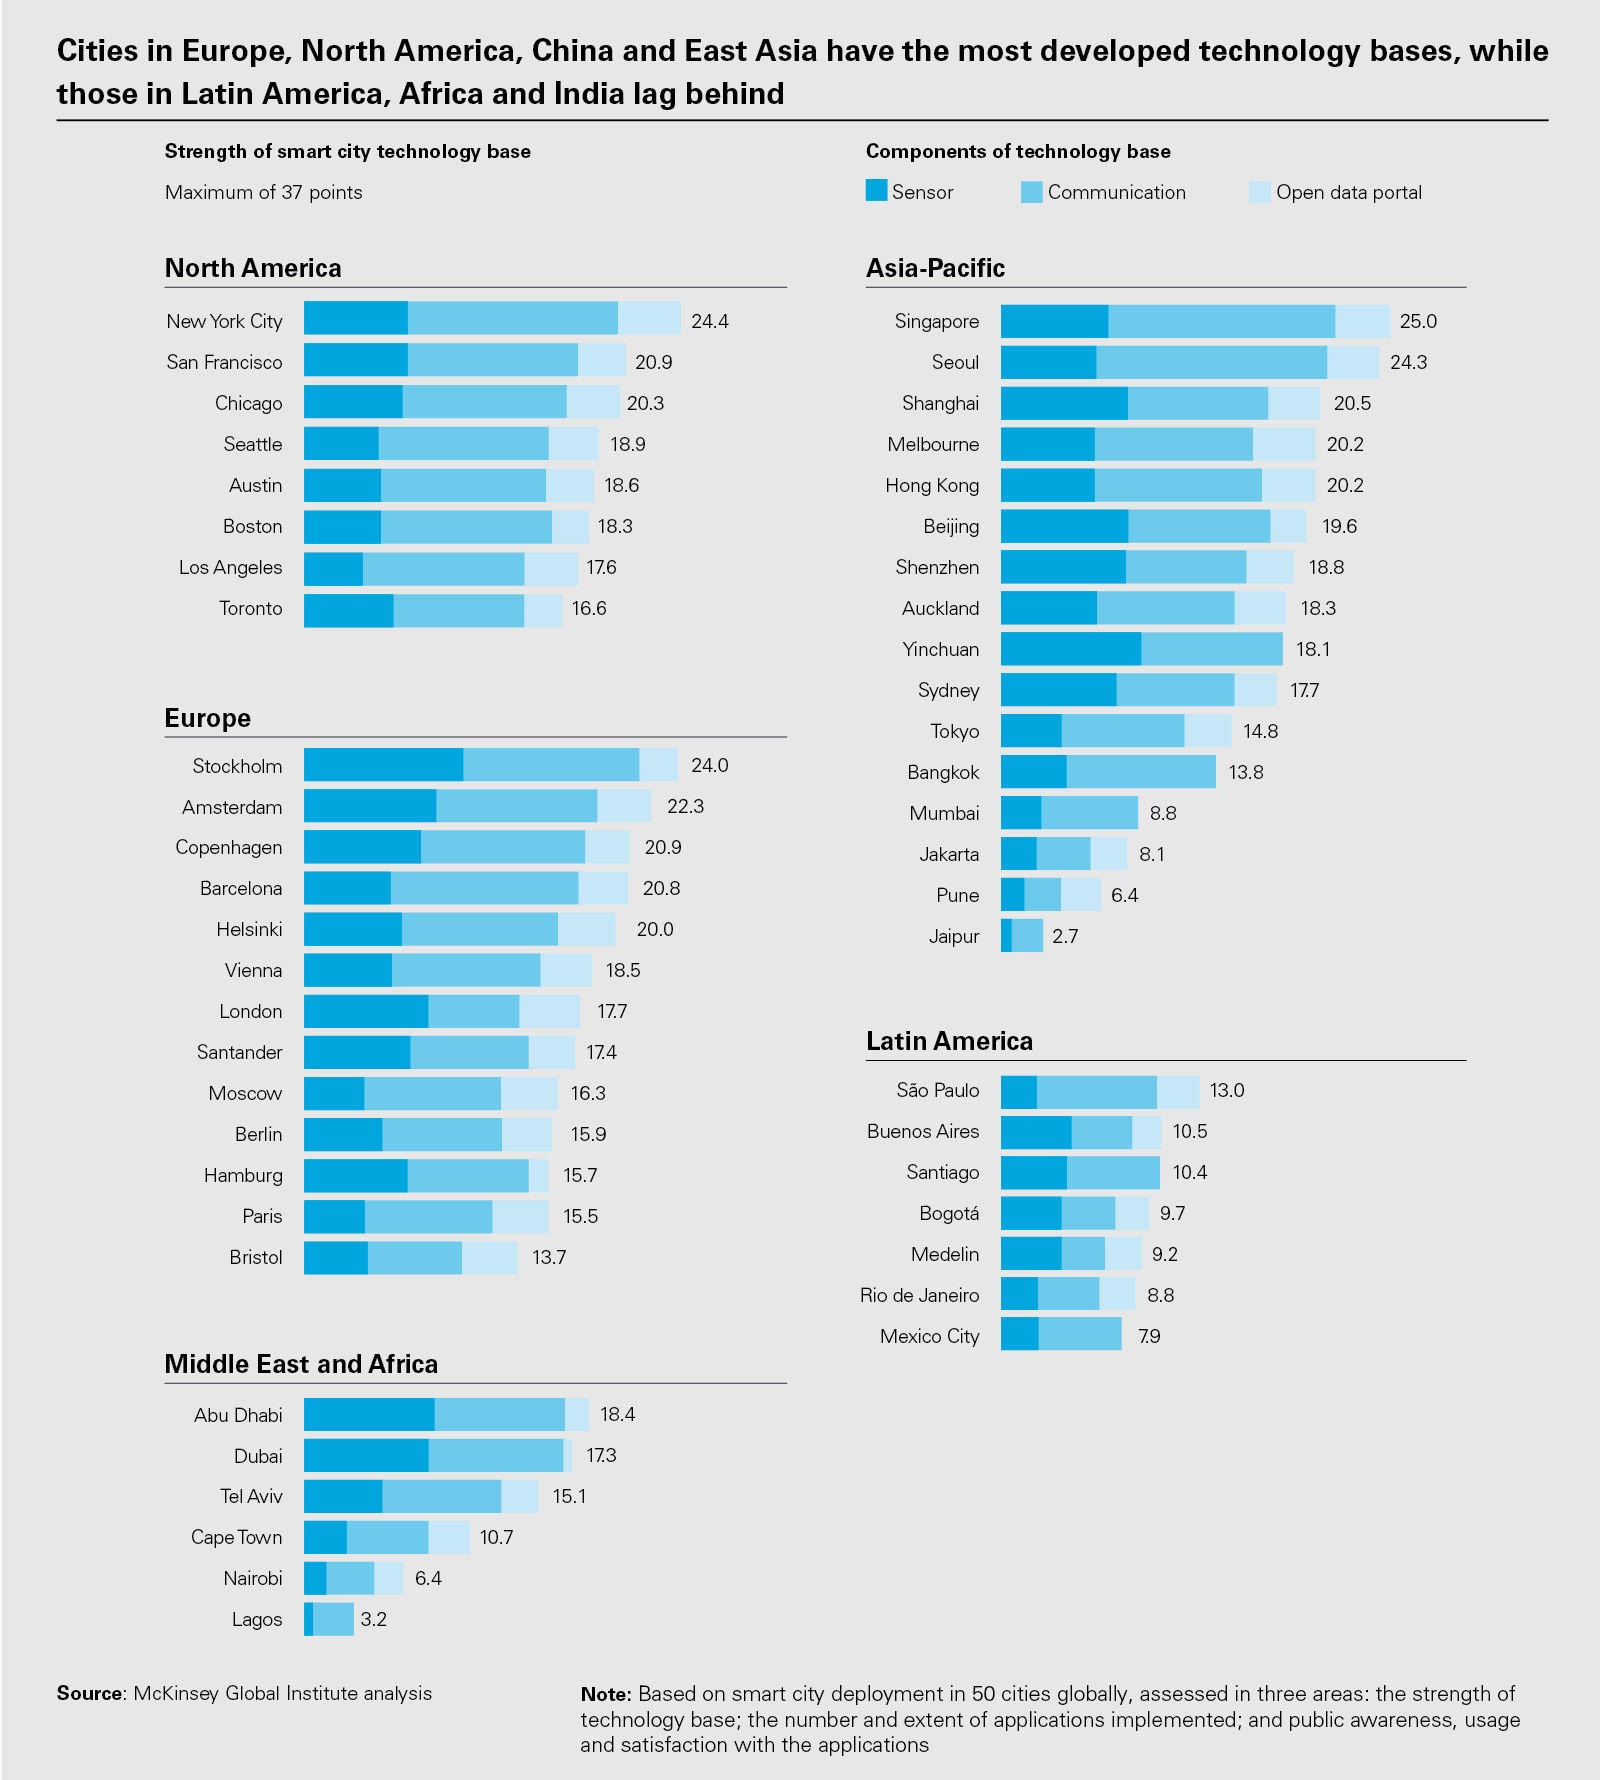 Cities in Europe, North America, China and East Asia have the most developed technology bases